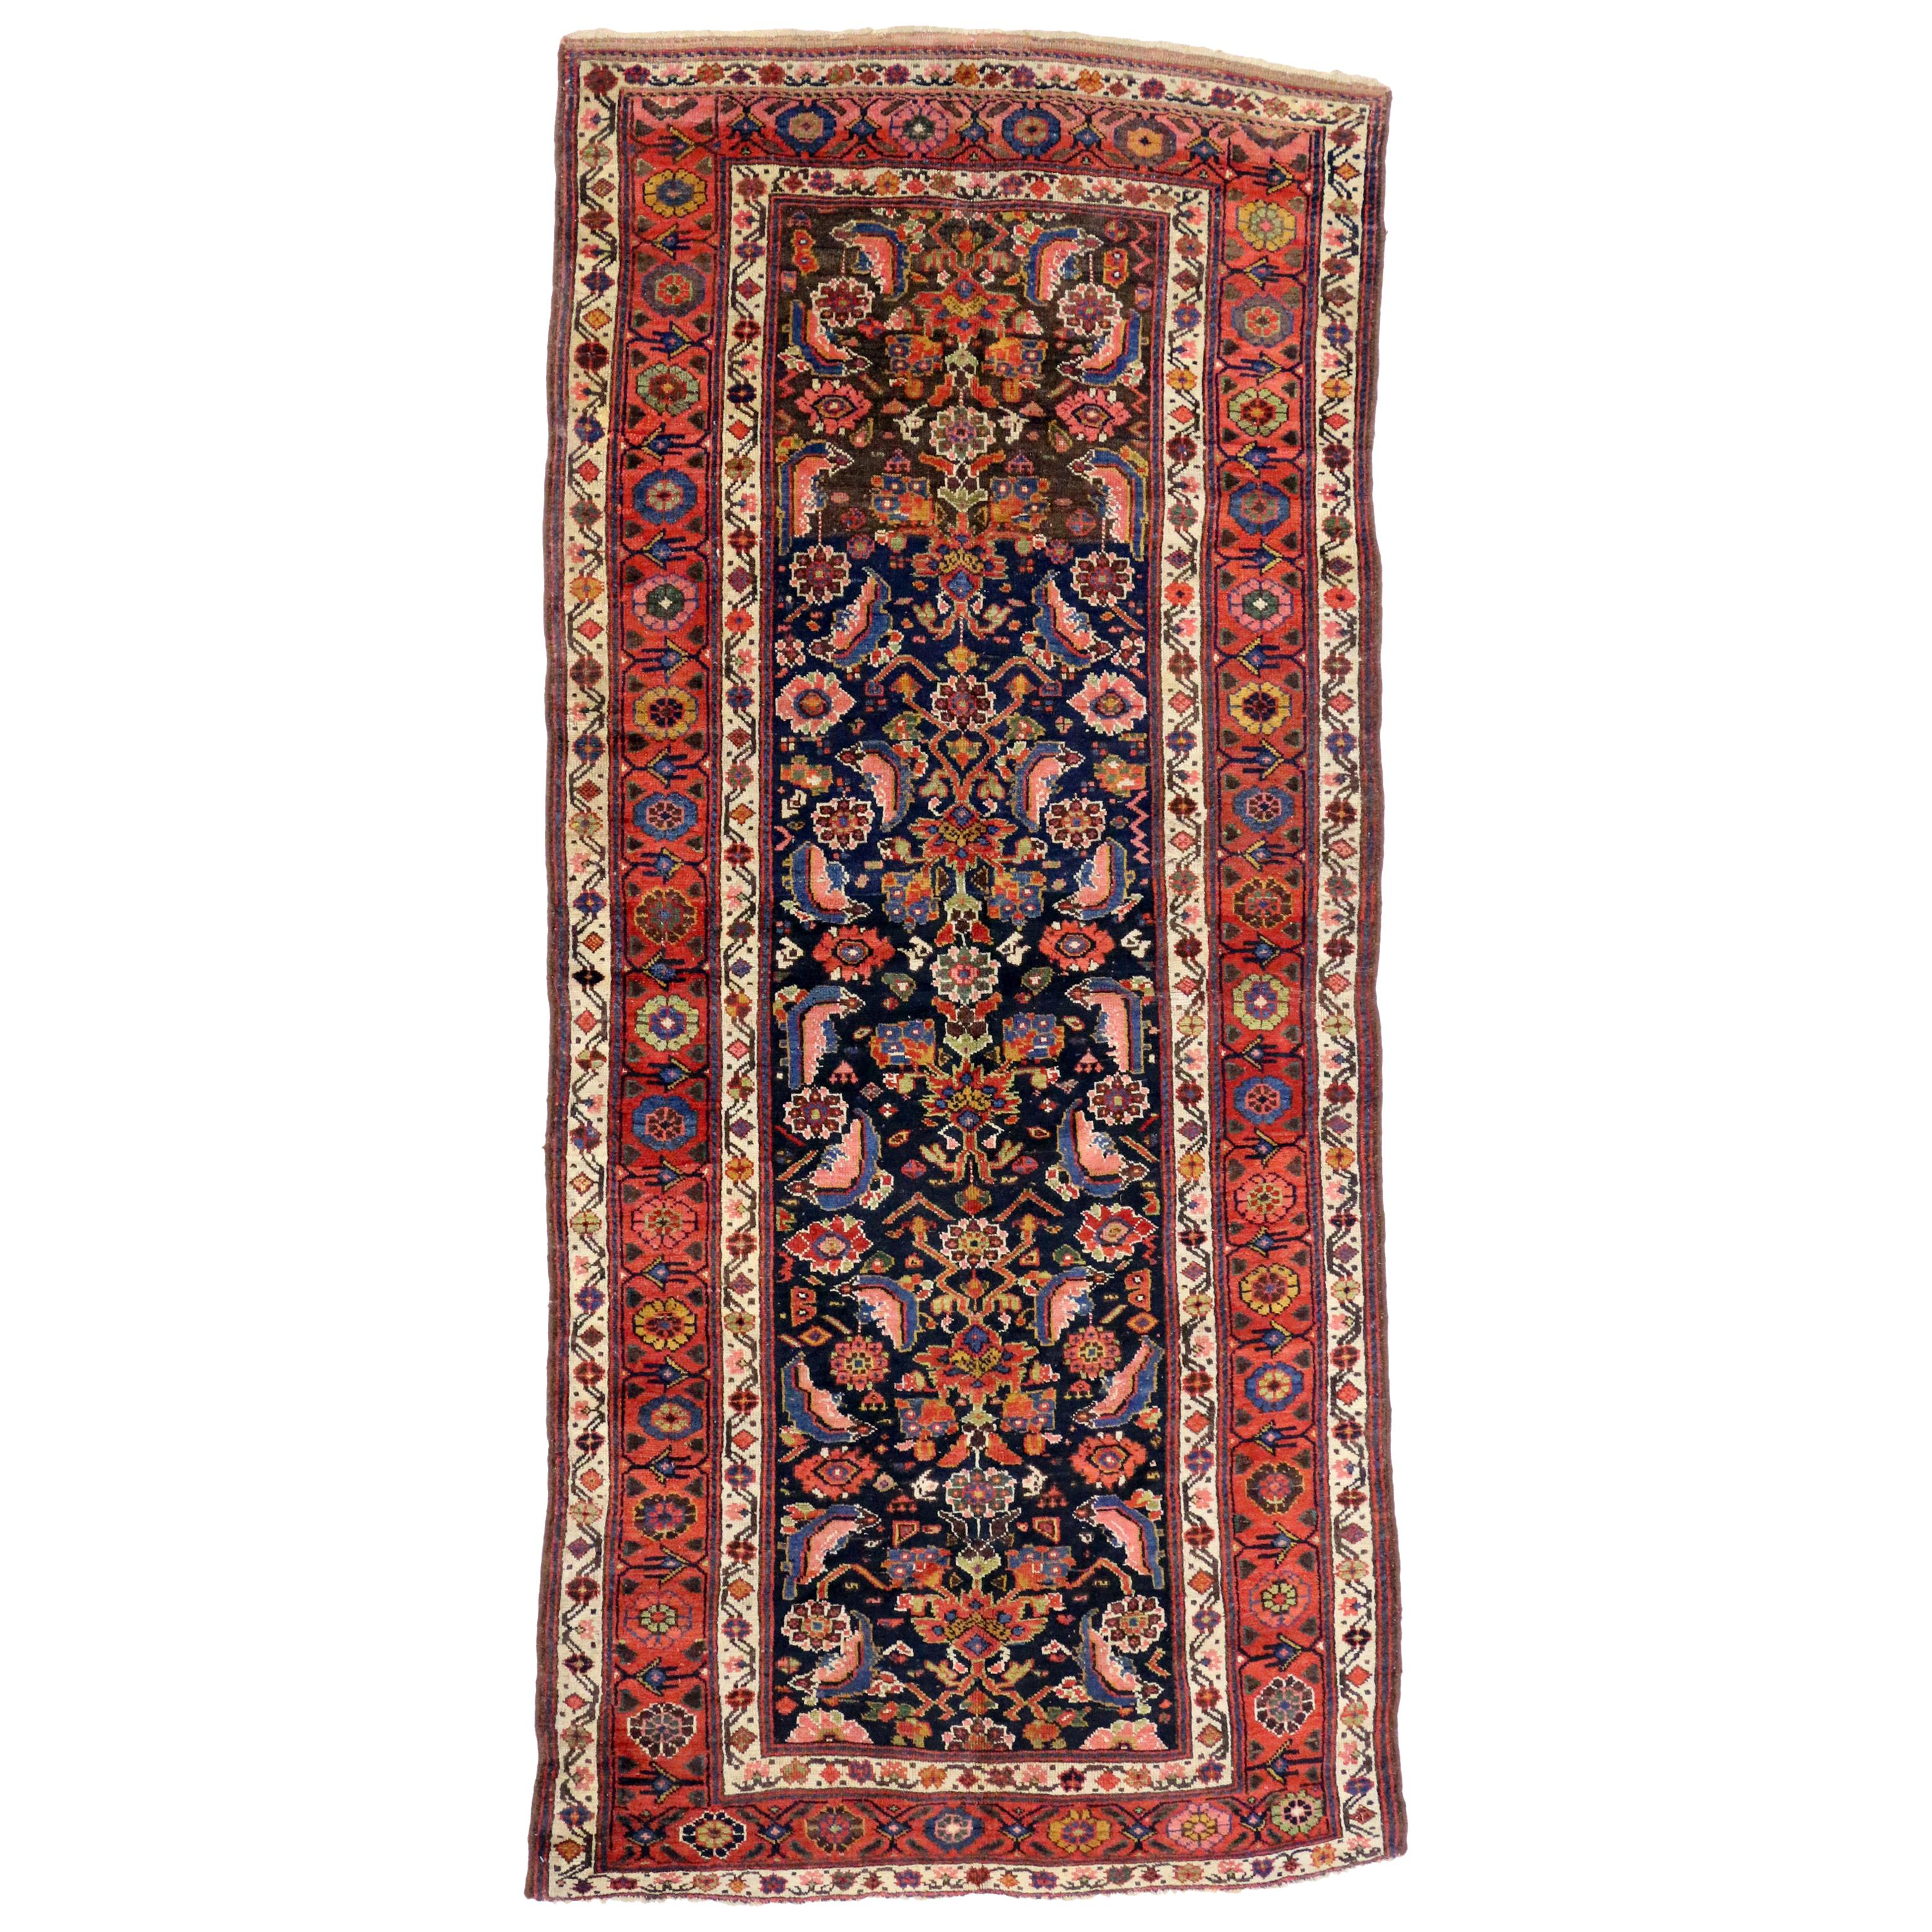 Wide Hallway Antique Tribal Persian Qashqai Runner Rug For Sale at 1stdibs